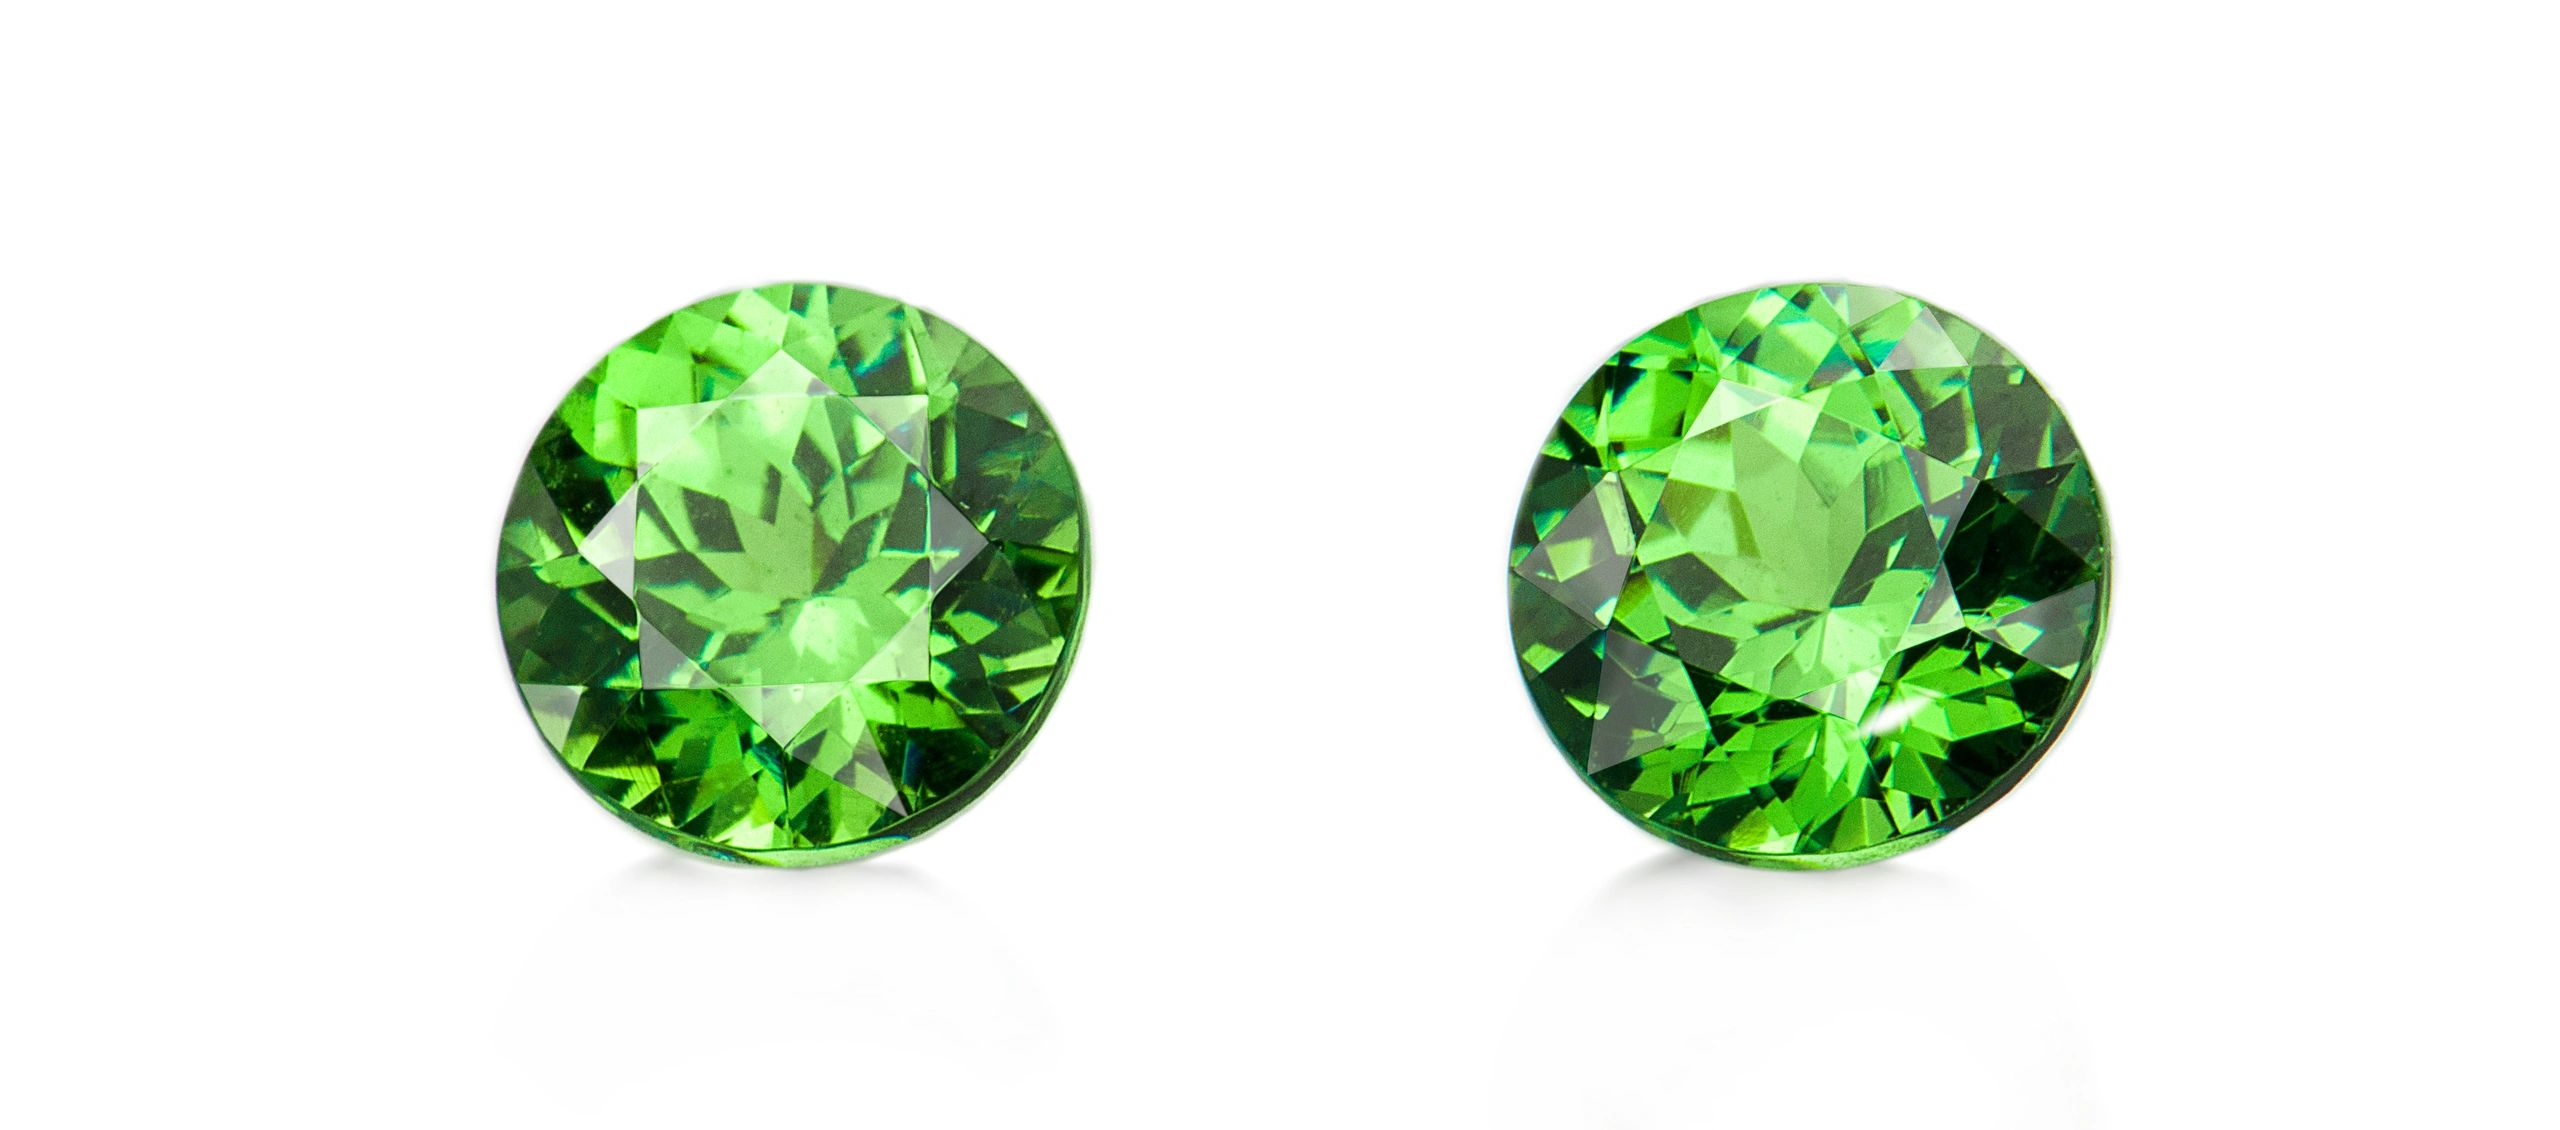 Demantoid garnet gemstones matched pair calibrated by Prosperity Earth from Madagascar